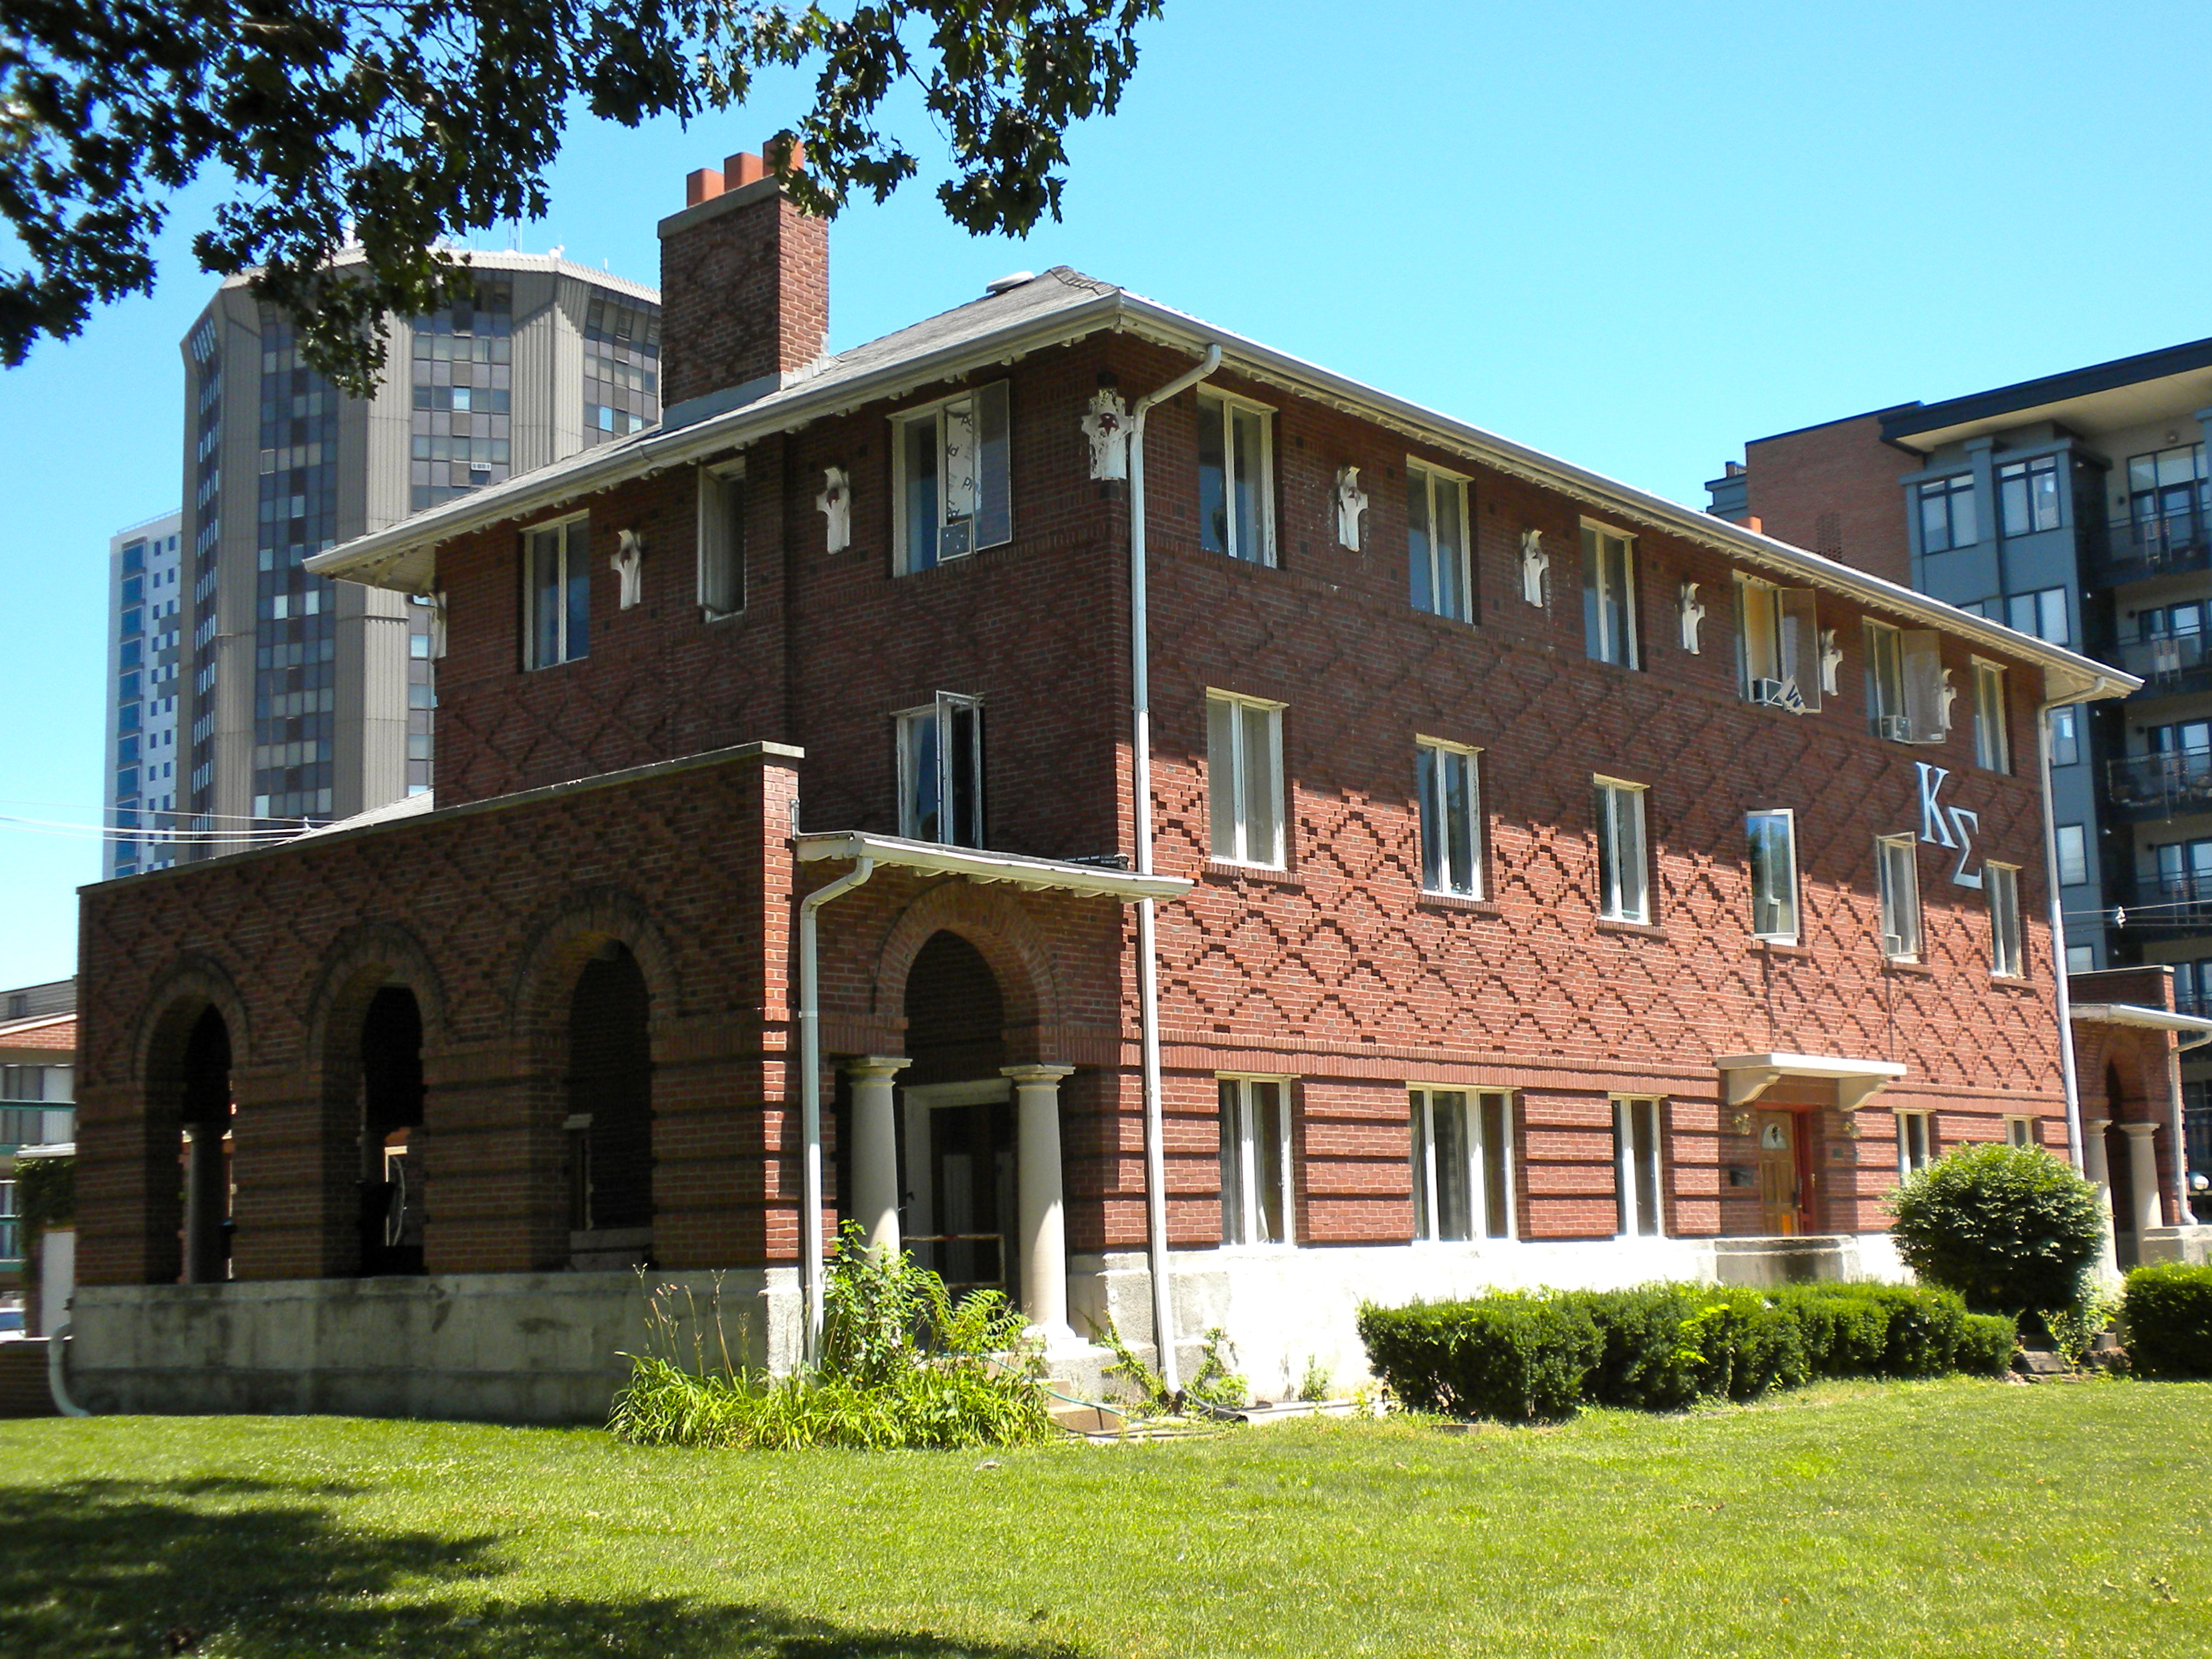 Kappa sigma fraternity house champaign roadtrippers for Wyndham garden urbana champaign